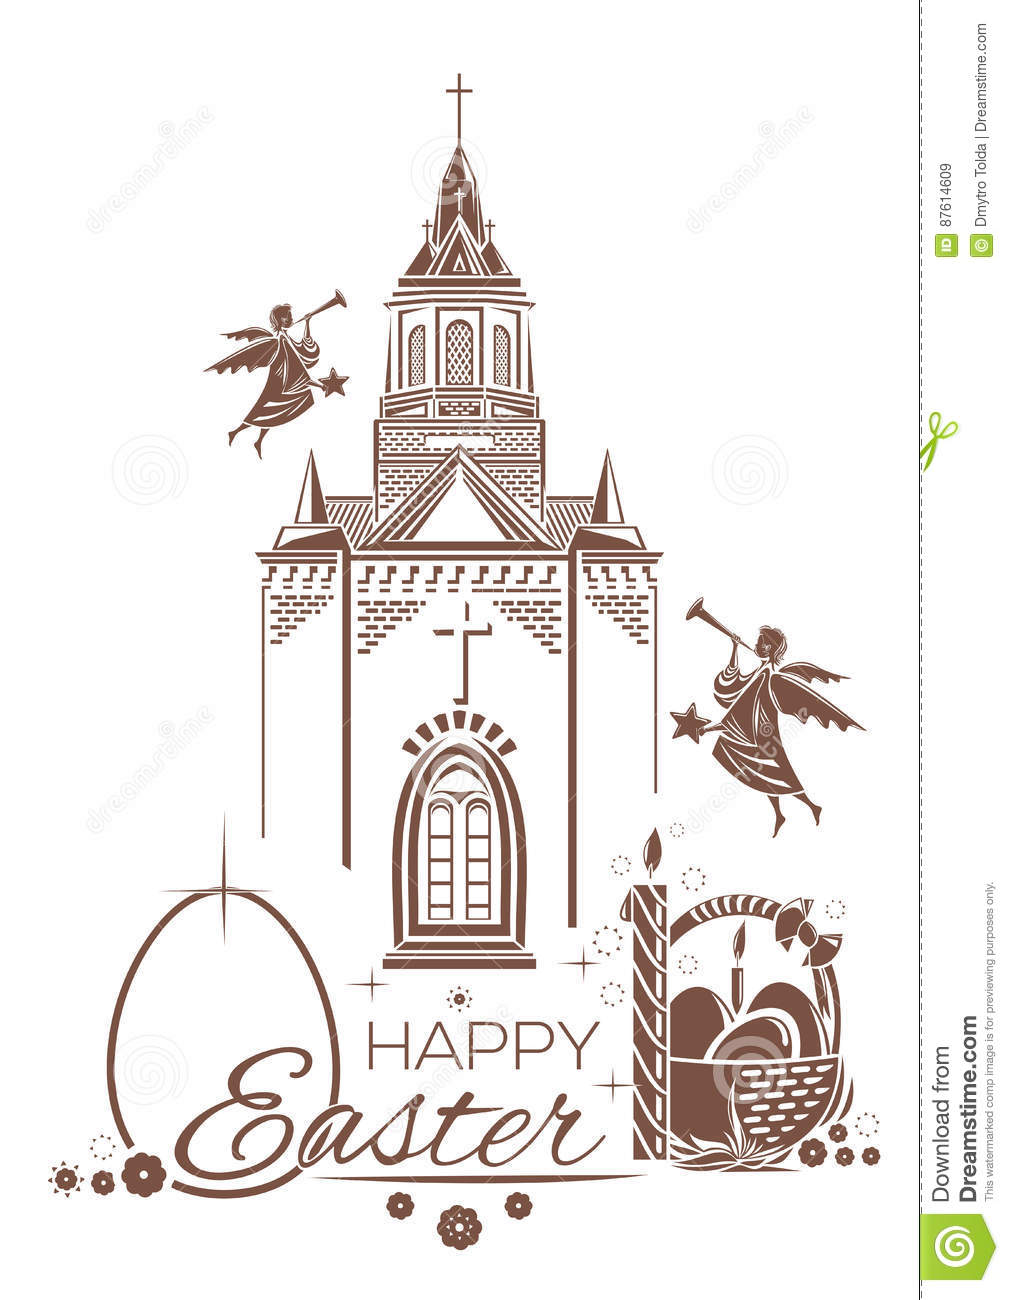 Catholic Church, burning candle, basket of Easter eggs, angels blow trumpets